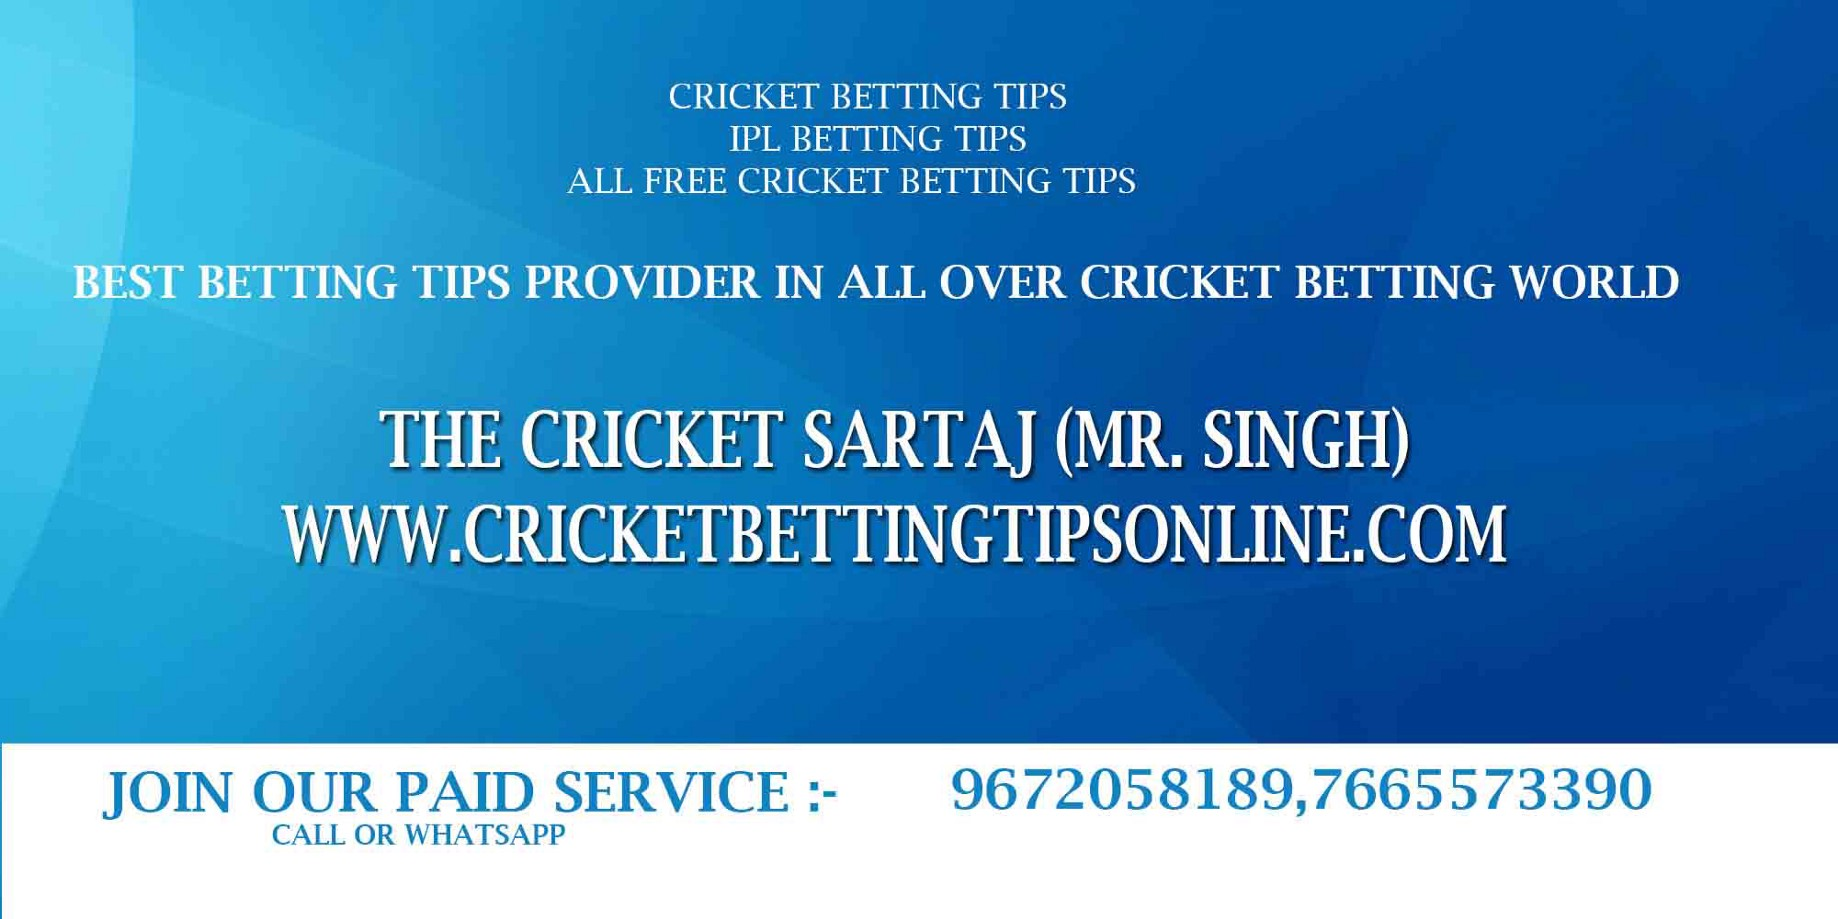 Criket betting tips free bitcoins png file